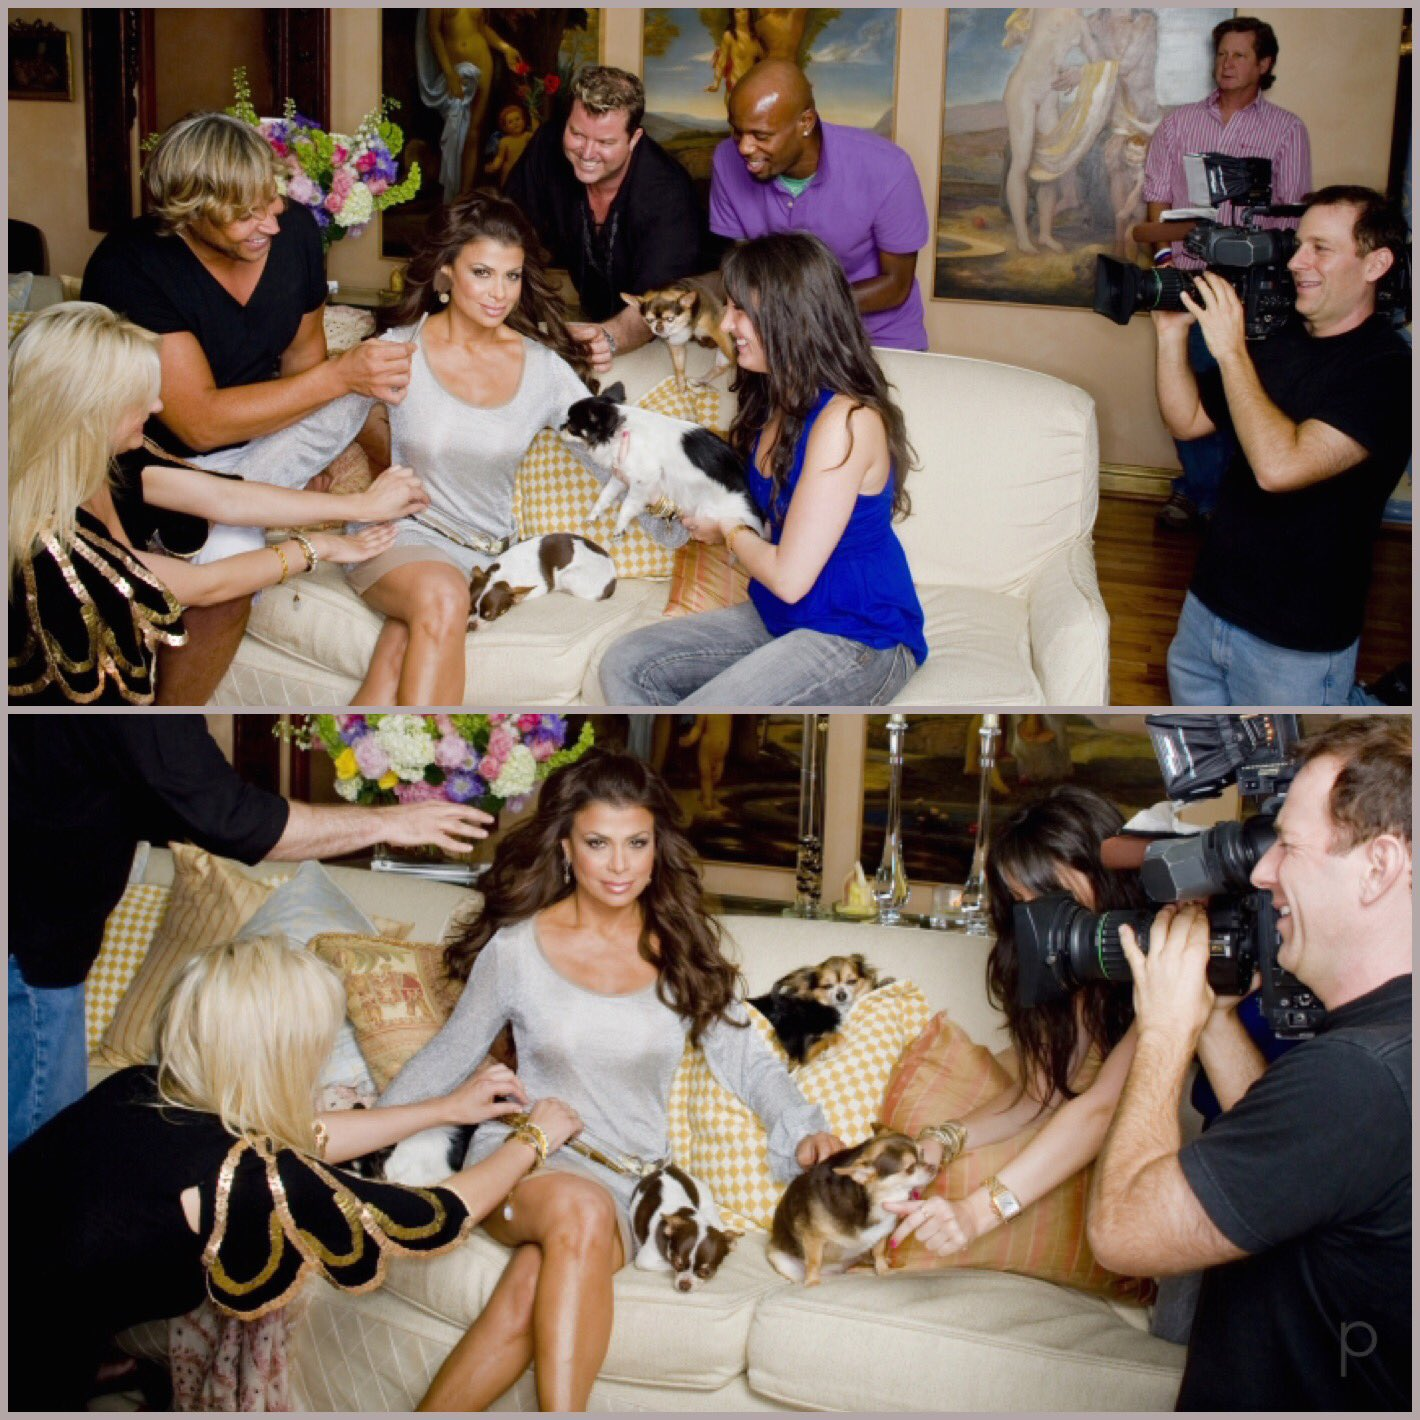 Happy #TakeYourDogToWorkDay!#FlashbackFriday to this shoot w/me & the girls! RT if u ❤️❤️❤️your 4-legged fam! xoP https://t.co/1ow4h4lMan